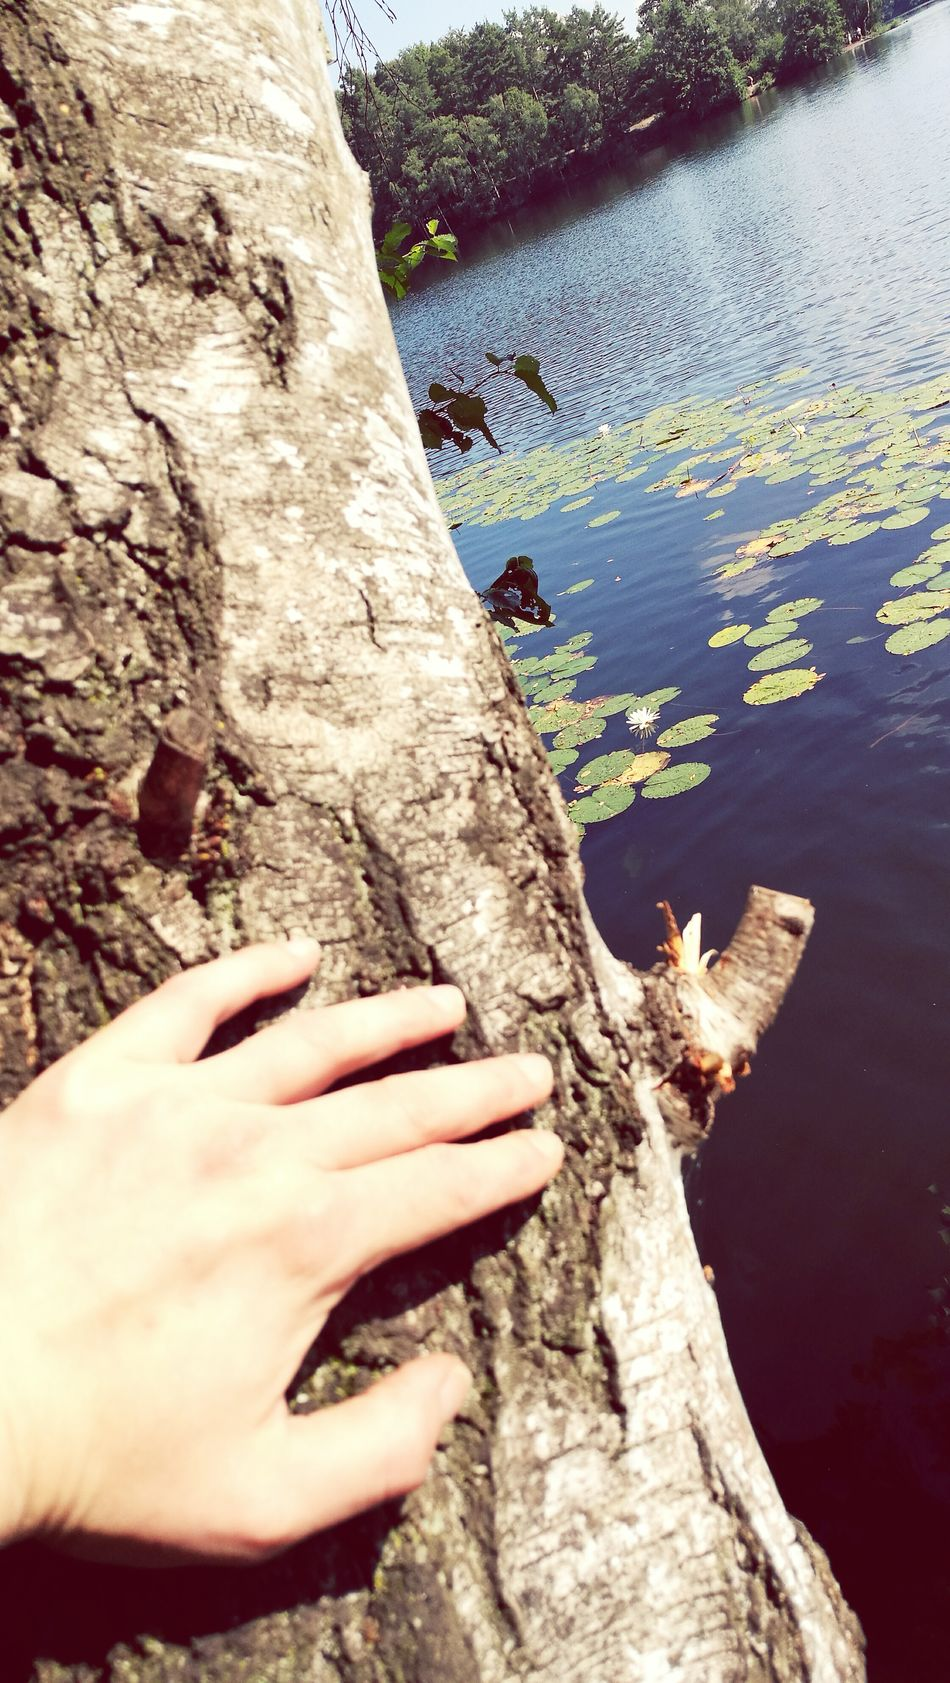 Water Lake High Angle View Tree Trunk River Tranquility Nature Personal Perspective Swimming Person Outdoors Non-urban Scene Person Tranquil Scene